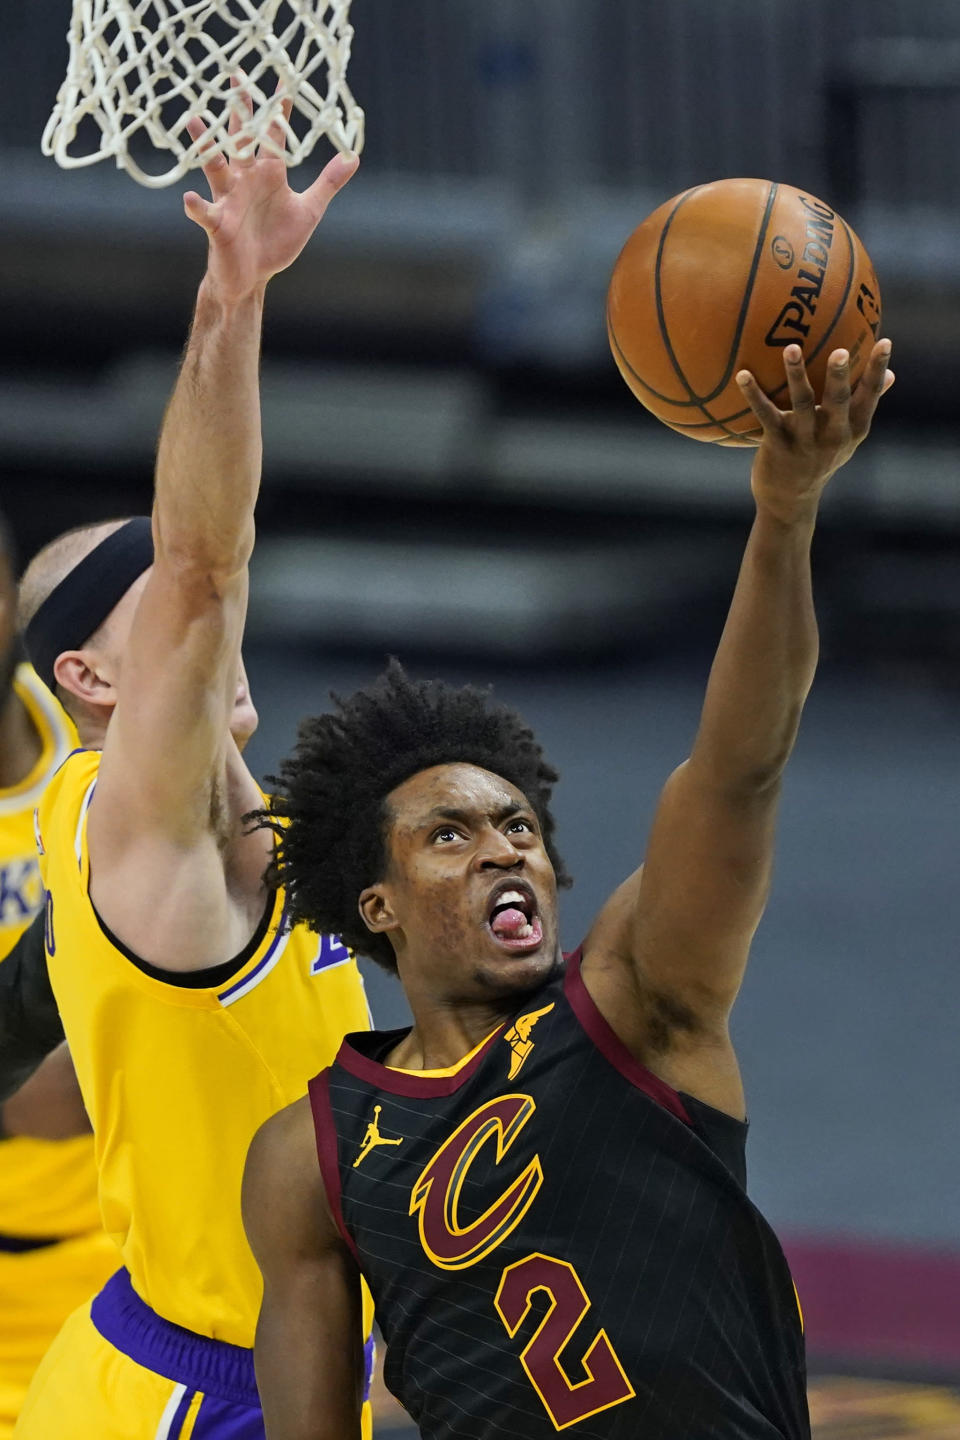 Cleveland Cavaliers' Collin Sexton, right, drives to the basket against Los Angeles Lakers' Alex Caruso in the first half of an NBA basketball game, Monday, Jan. 25, 2021, in Cleveland. (AP Photo/Tony Dejak)